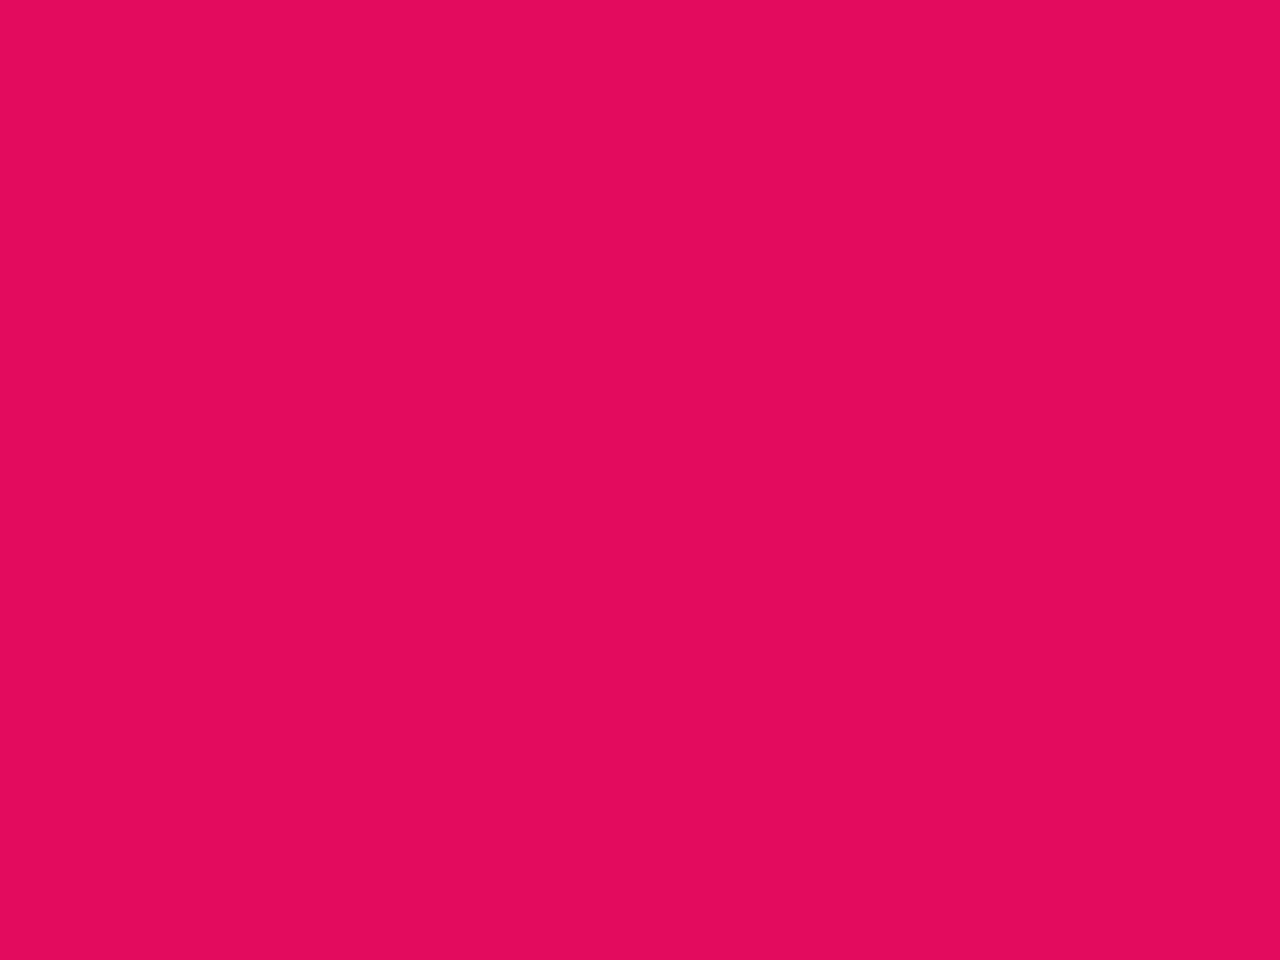 1280x960 Raspberry Solid Color Background